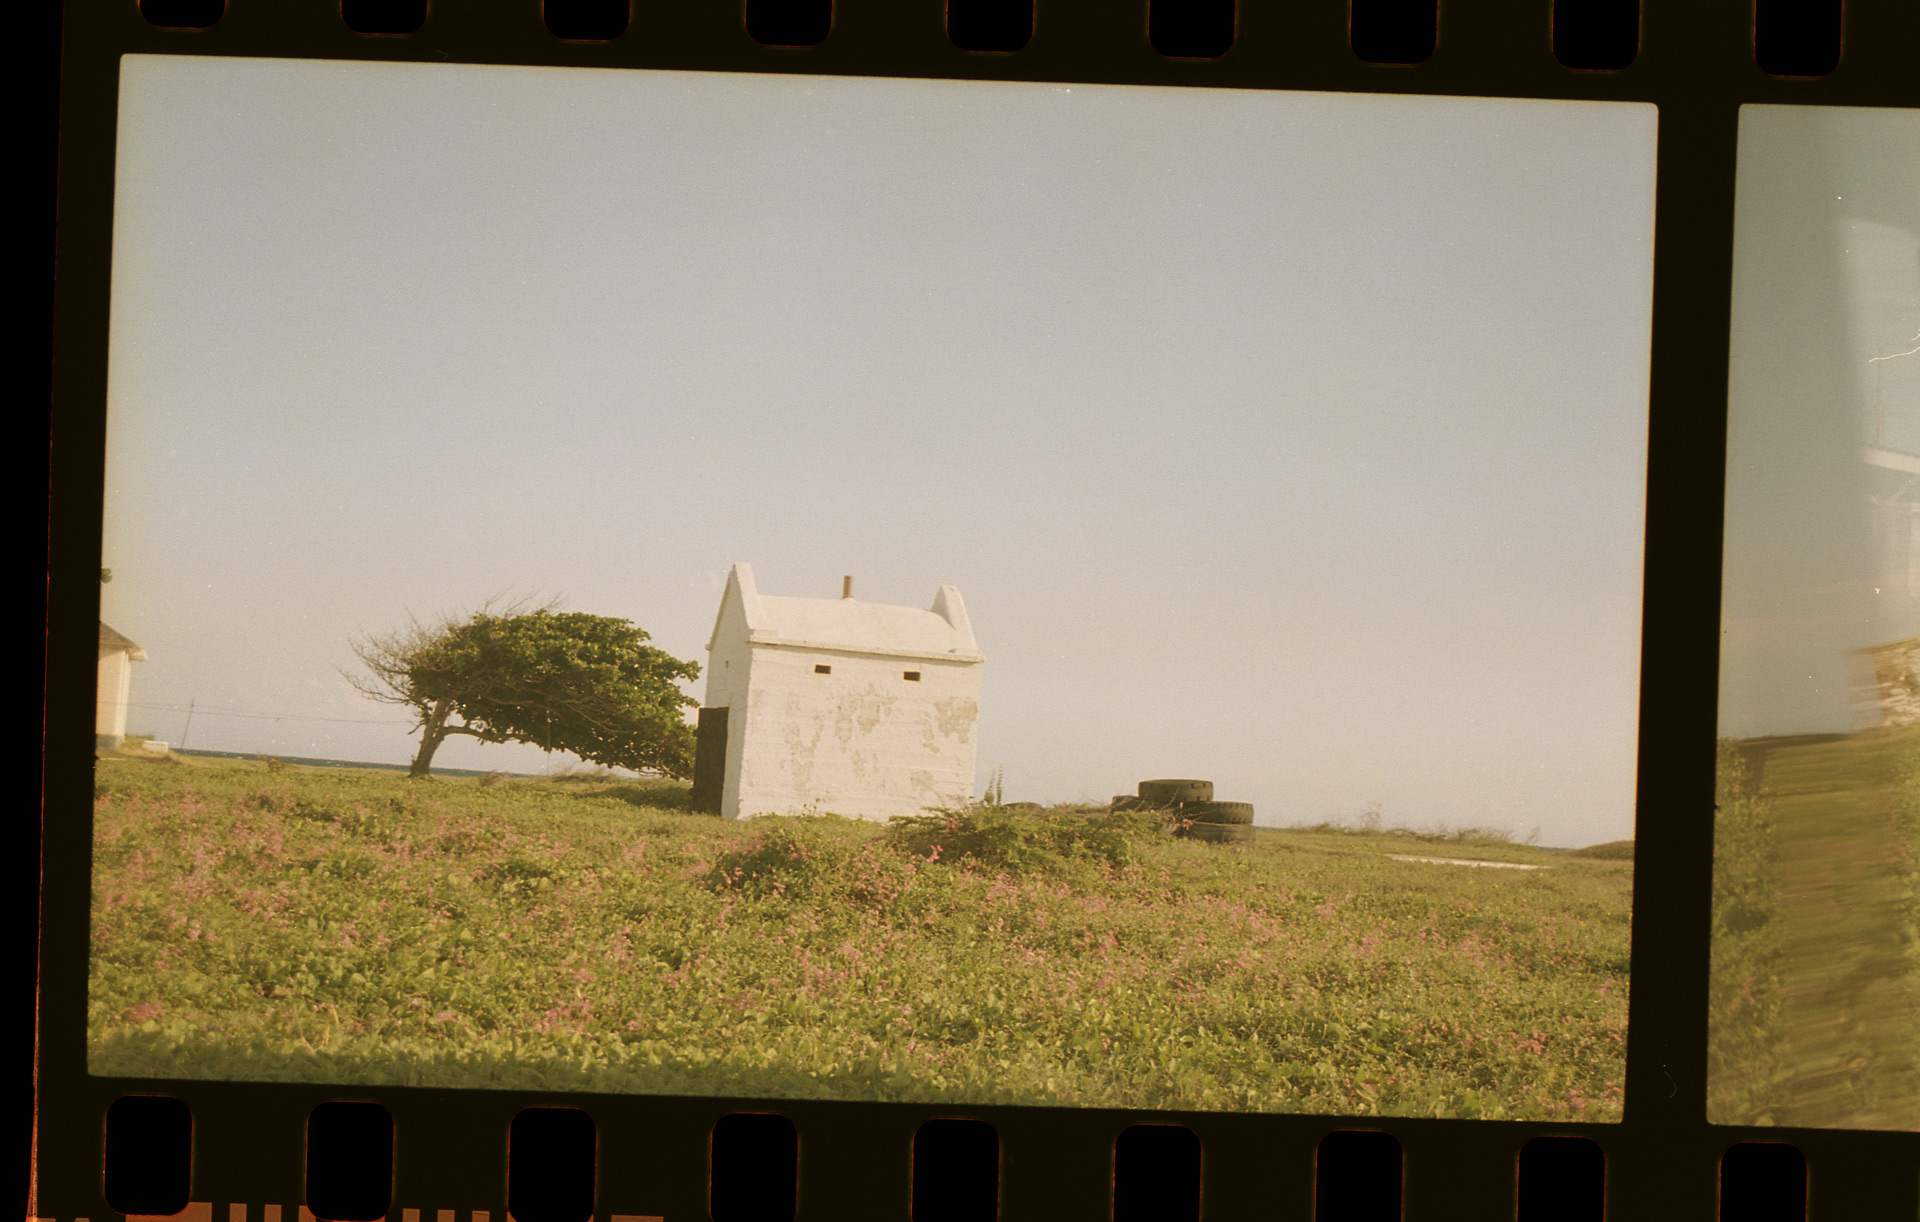 picture of white simple house in field with tree next to it by Oumayma B Tanfous in Jamaica